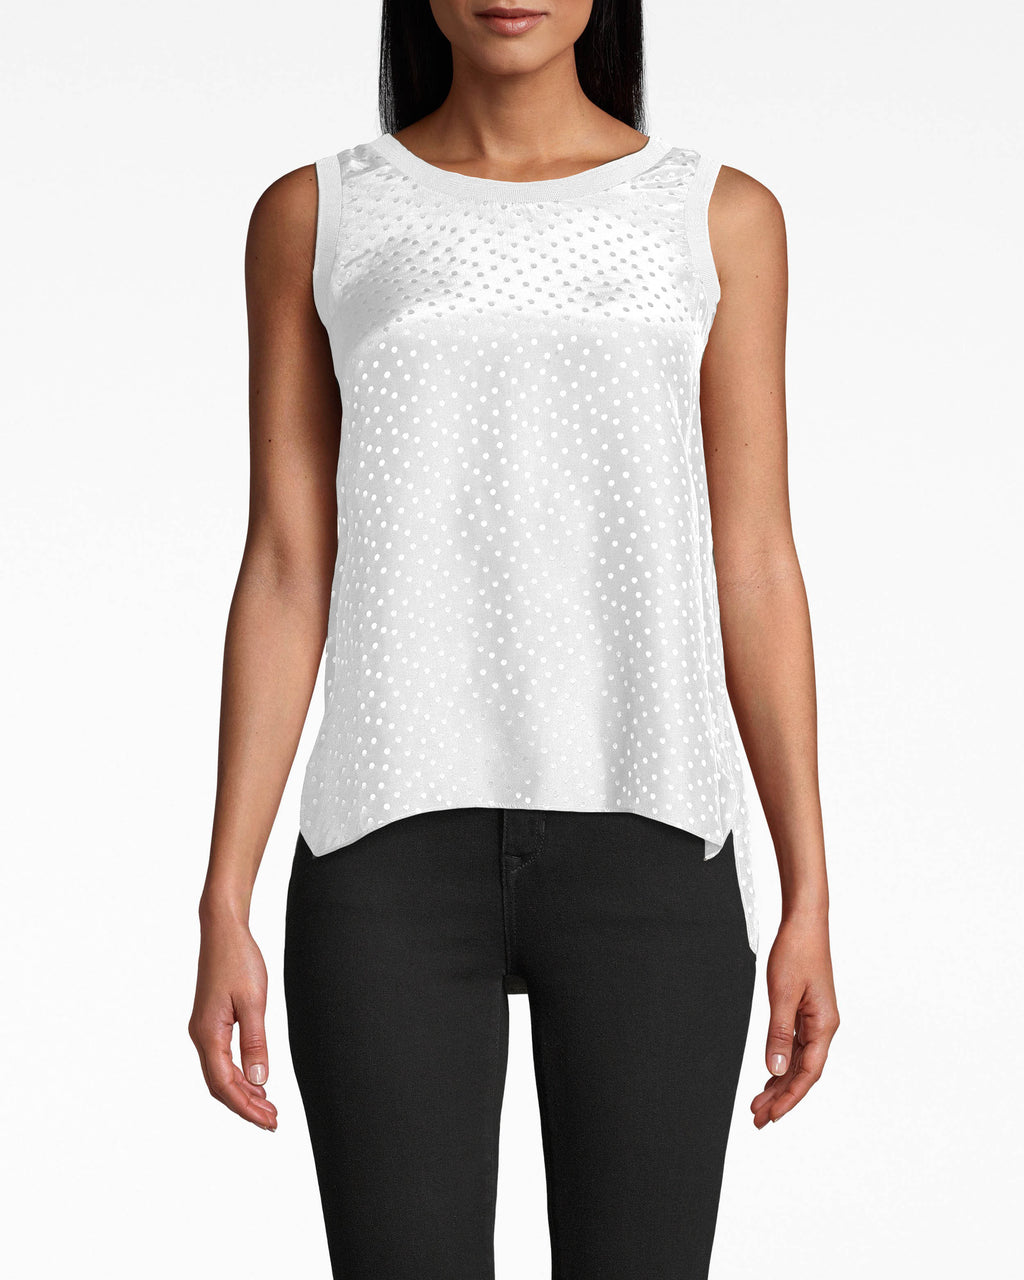 CT17896 - POLKA DOT JACQUARD TANK TOP - tops - shirts - THIS DELICATE TANK IS PERFECT FOR BACKYARD BBQ'S AND LOUNGING ON THE COUCH ALIKE. WITH BRA FRIENDLY STRAPS AND POLKA DOT DETAIL THROUGHOUT. Add 1 line break STYLIST TIP: WEAR WITH DENIM CUTOFFS AND YOUR FAVORITE SUMMER SHOES.